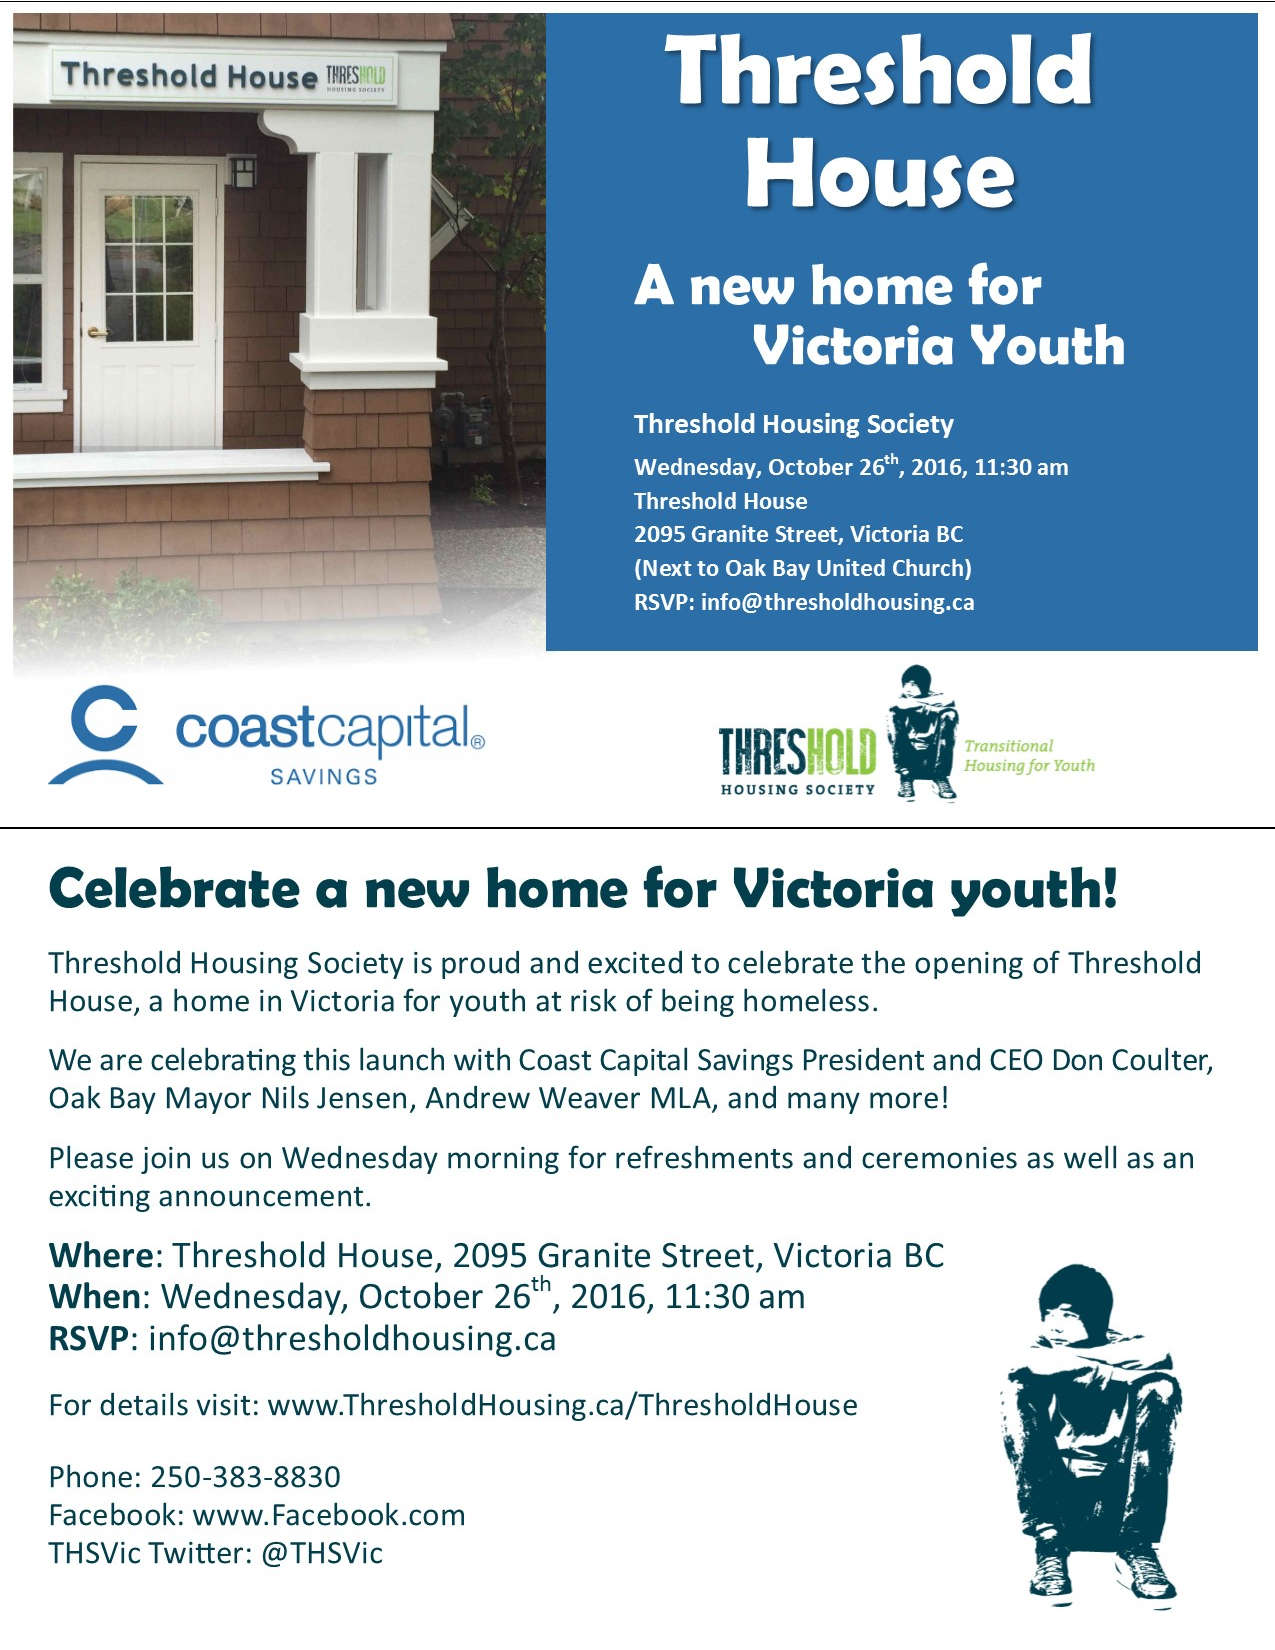 Threshold House Oak Bay - Victoria Youth Homelessness